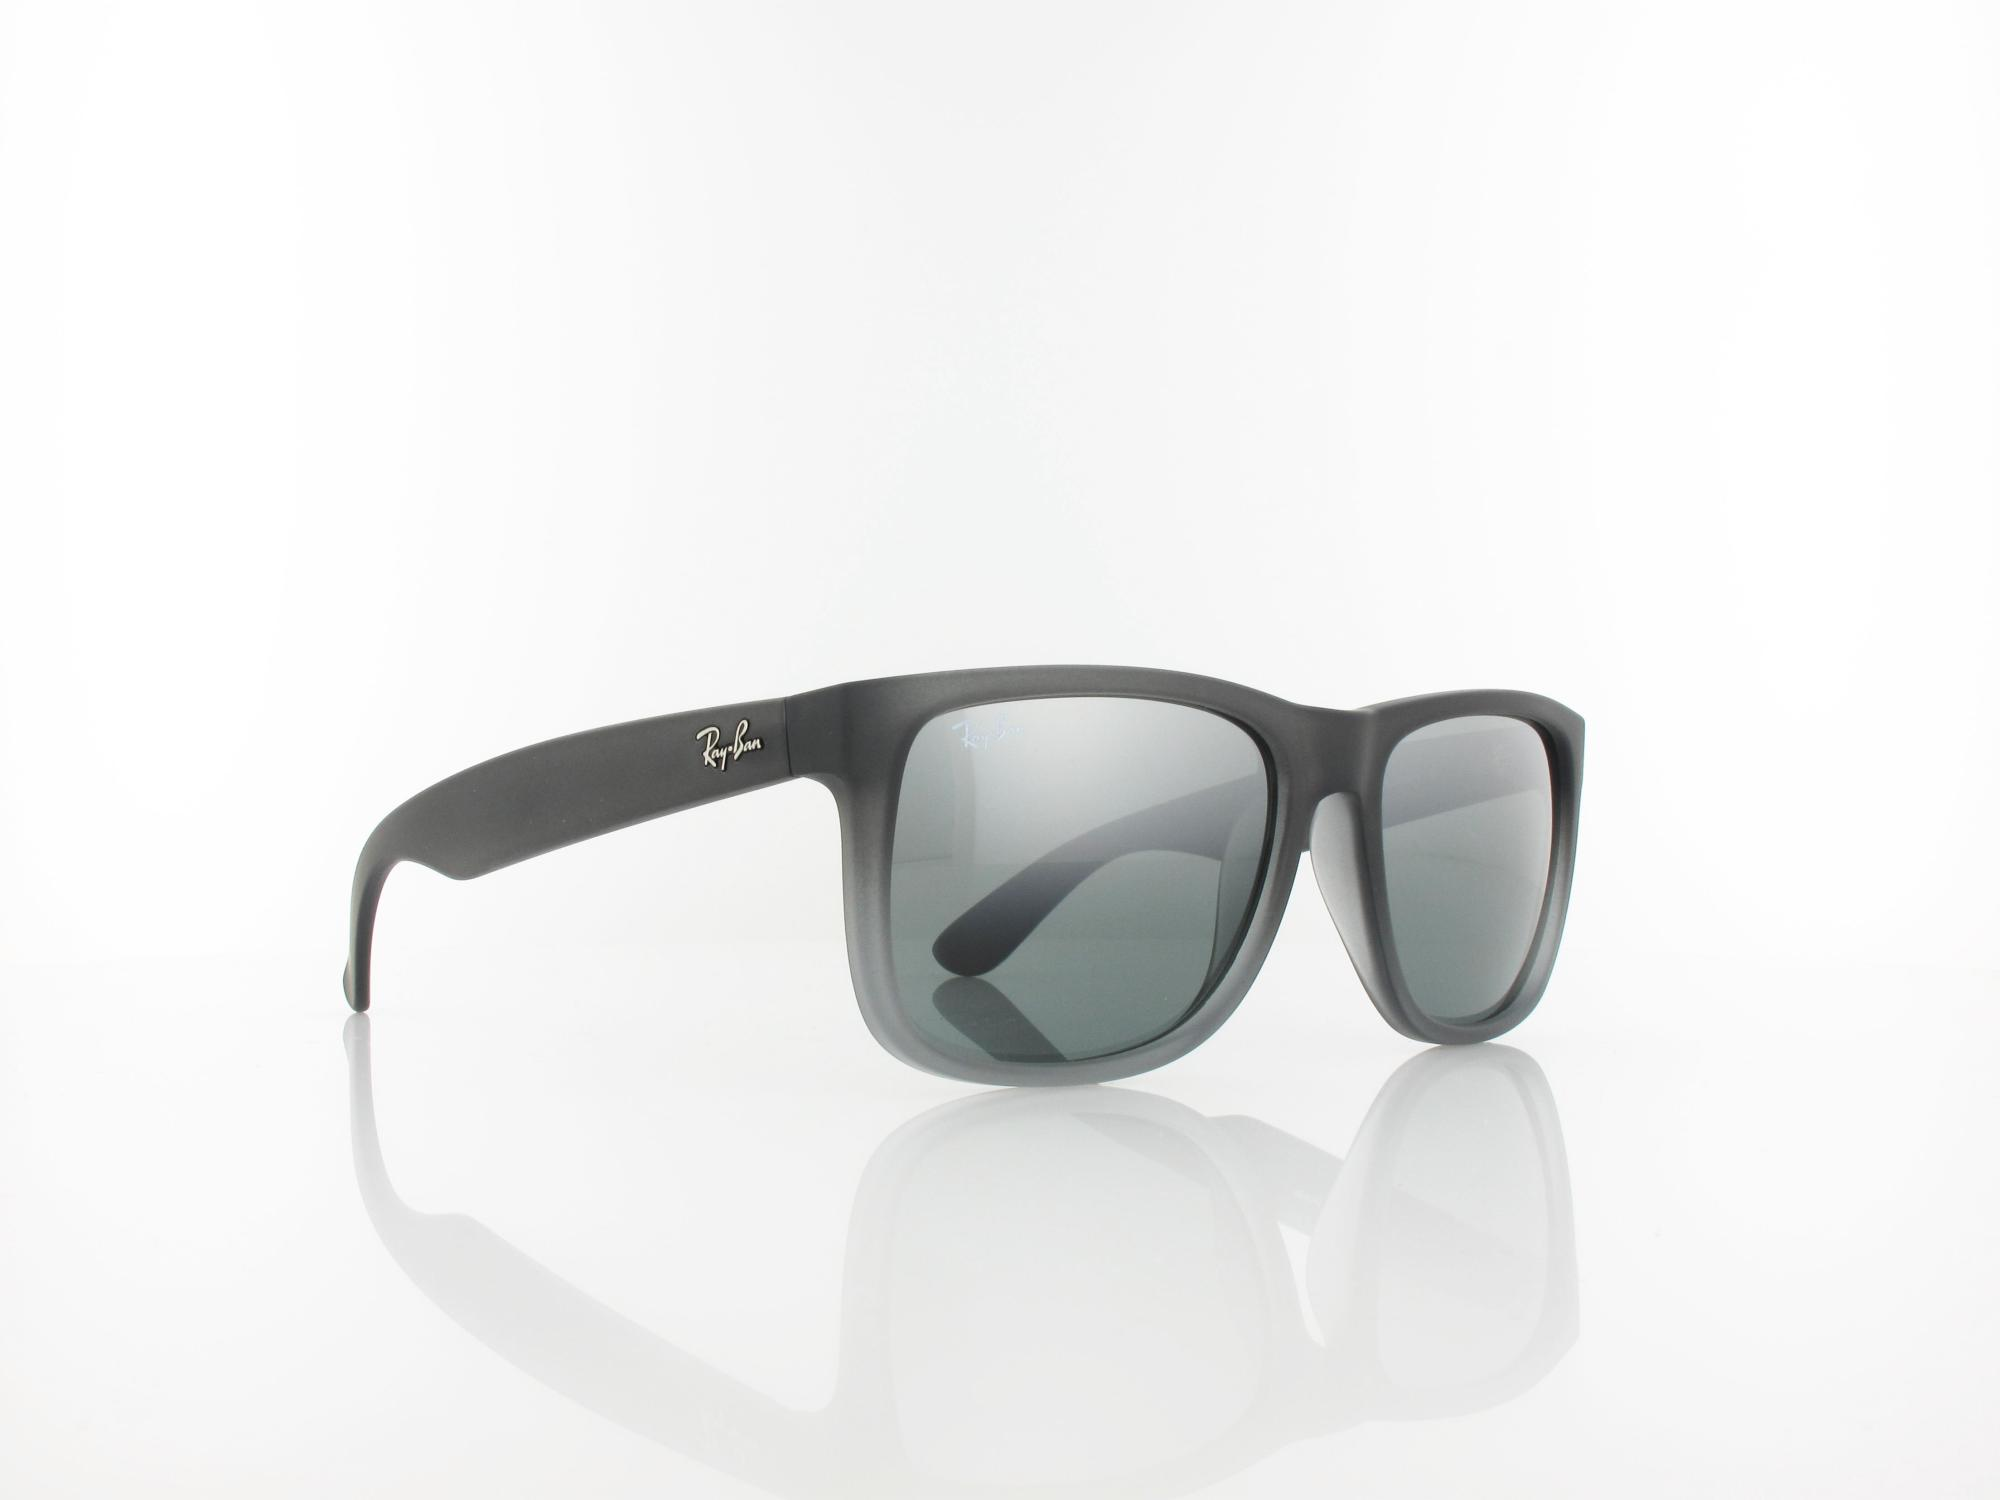 Ray Ban | Justin RB4165 852/88 54 | rubber grey transparent / grey silver mirror gradient